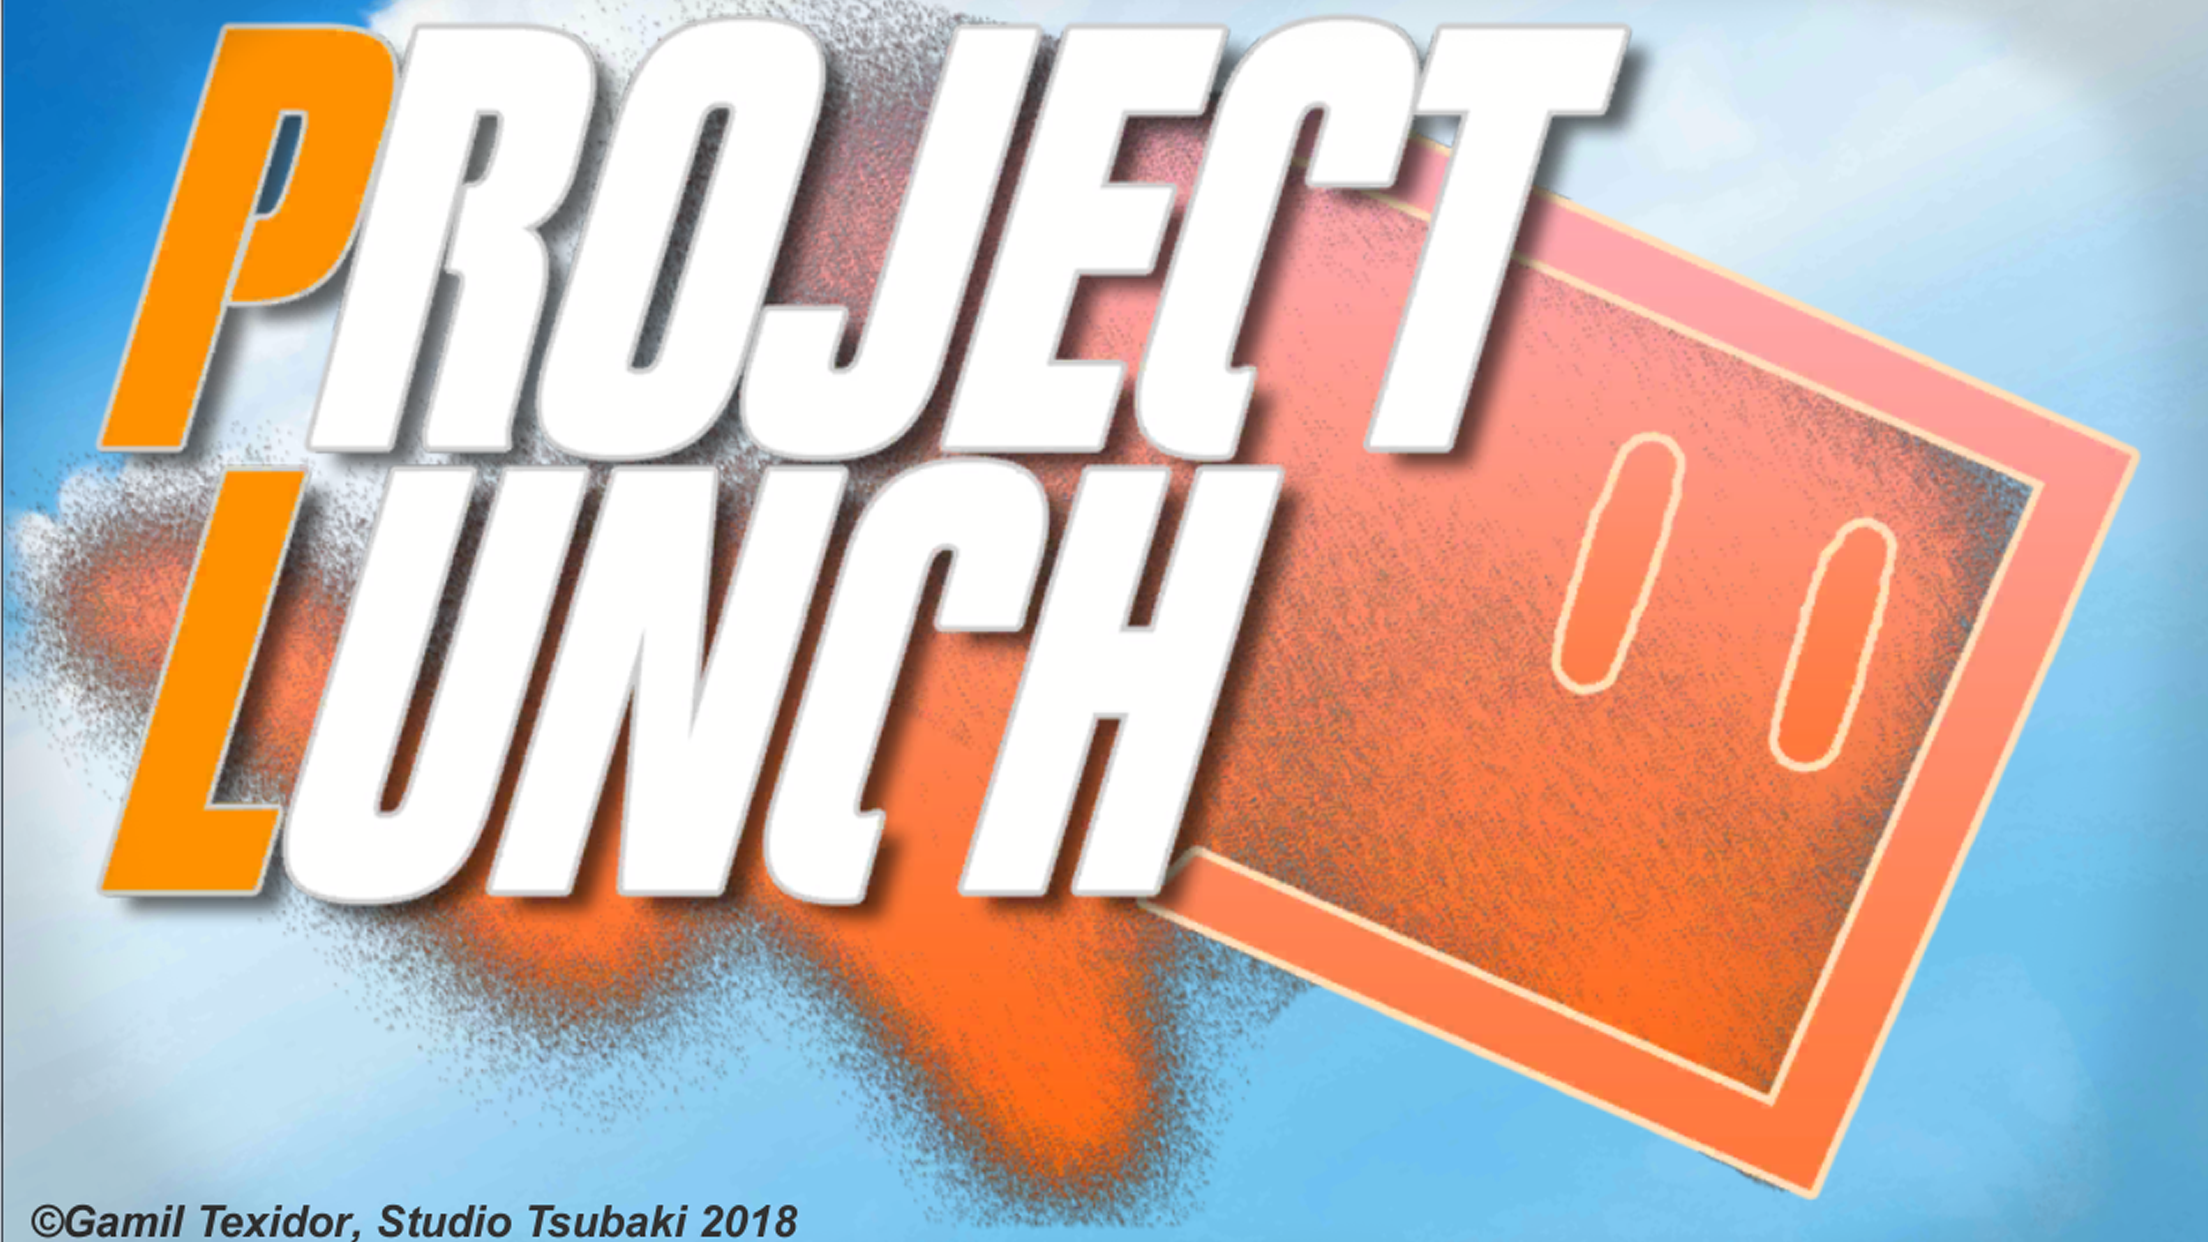 Project Lunch v1.2 Out Now On App Store!